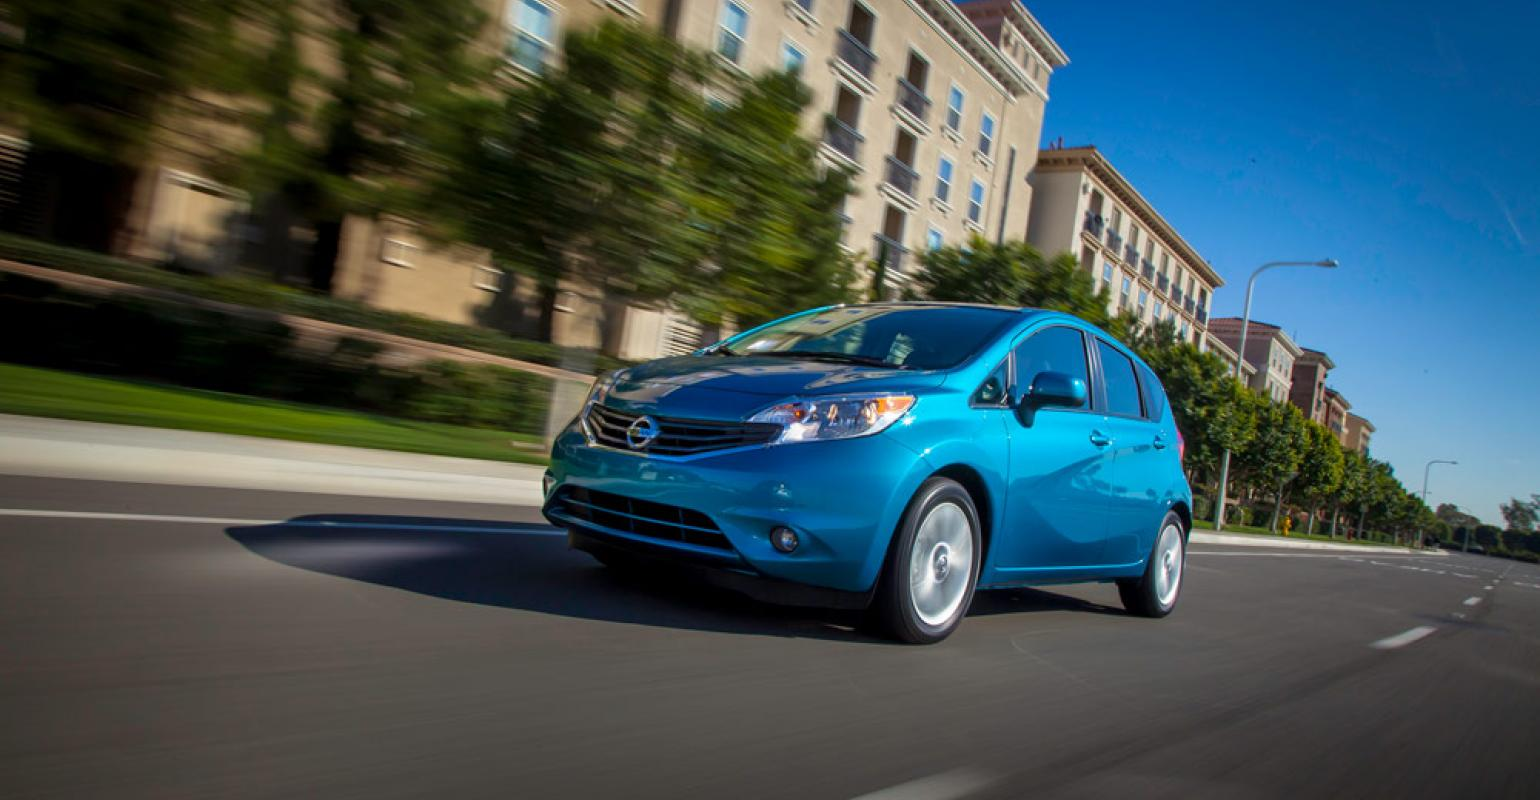 nissan versa note offers affordability with little sacrifice | wardsauto